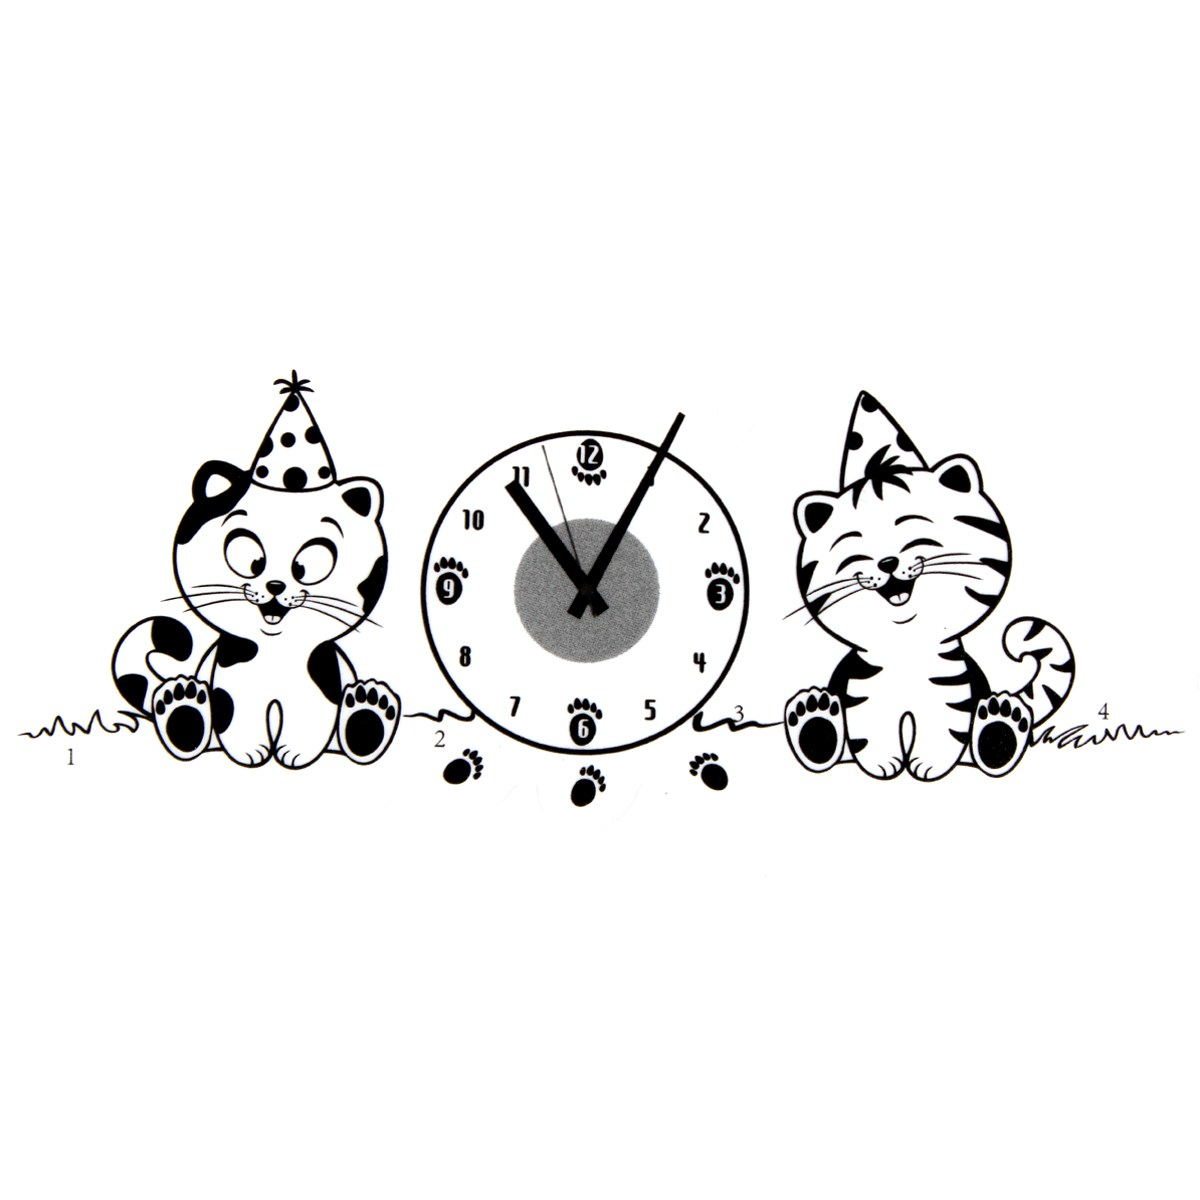 DIY Modern 3D Decorative Mirrors Stickers PVC Wall Clock And Happy Cats For Living Rooms Office Wallpaper Cute Decoration